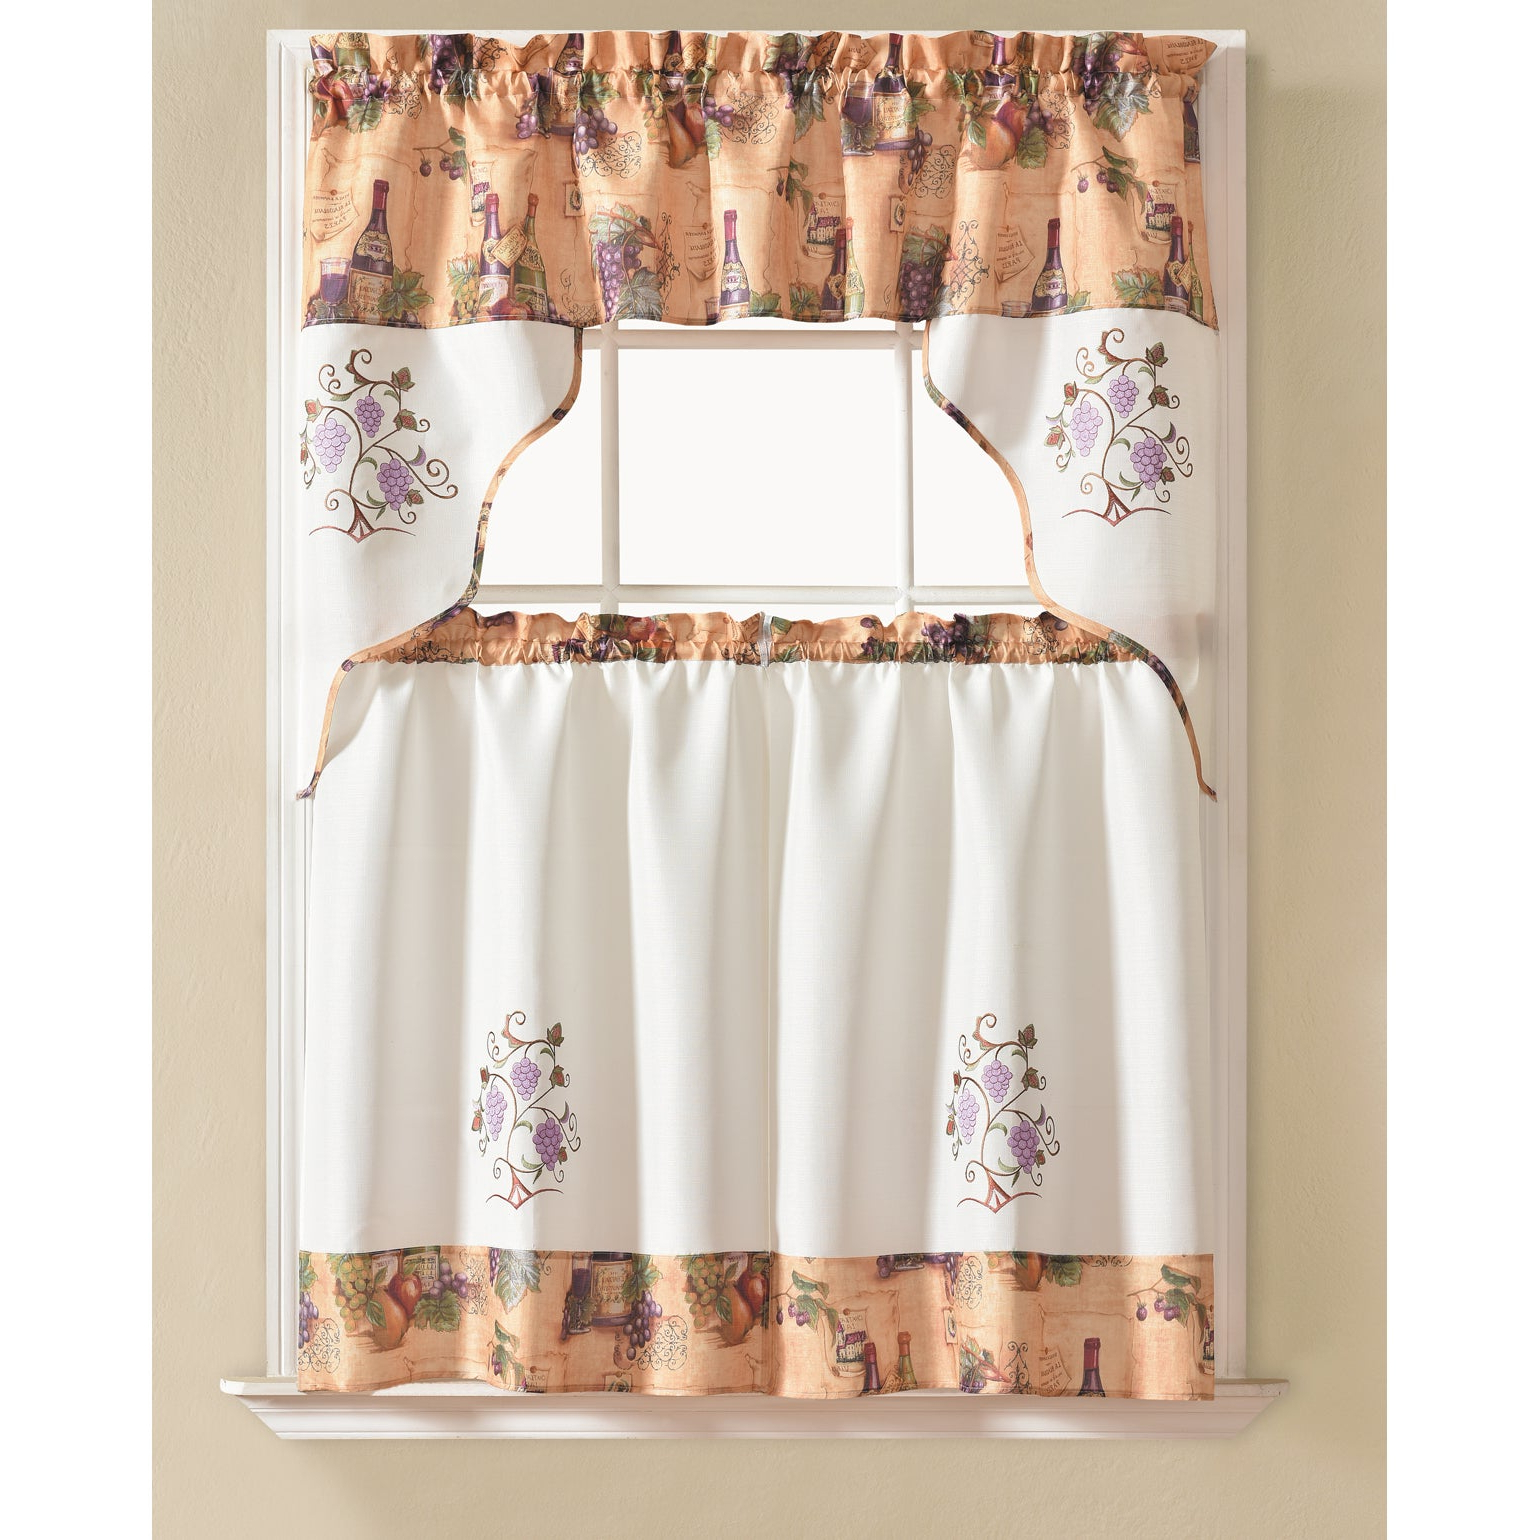 2020 Delicious Apples Kitchen Curtain Tier And Valance Sets Regarding Rt Designers Collection Urban Embroidered Tier And Valance Kitchen Curtain  Tier Set (View 1 of 20)